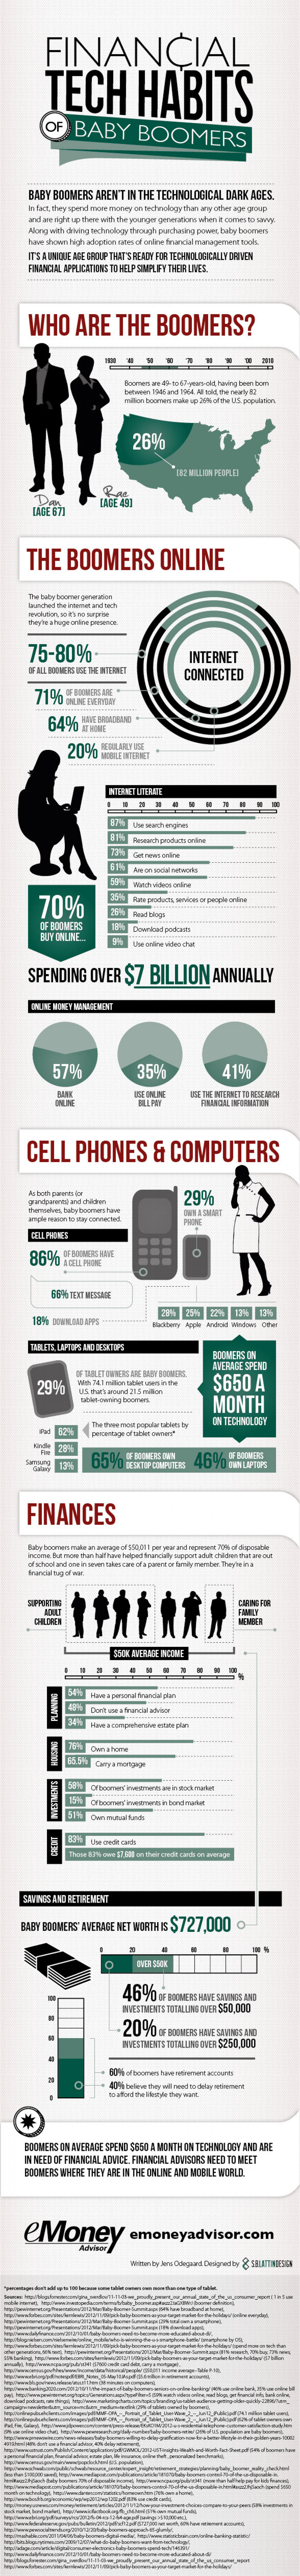 Financial Tech Habits of Boomers Infographic